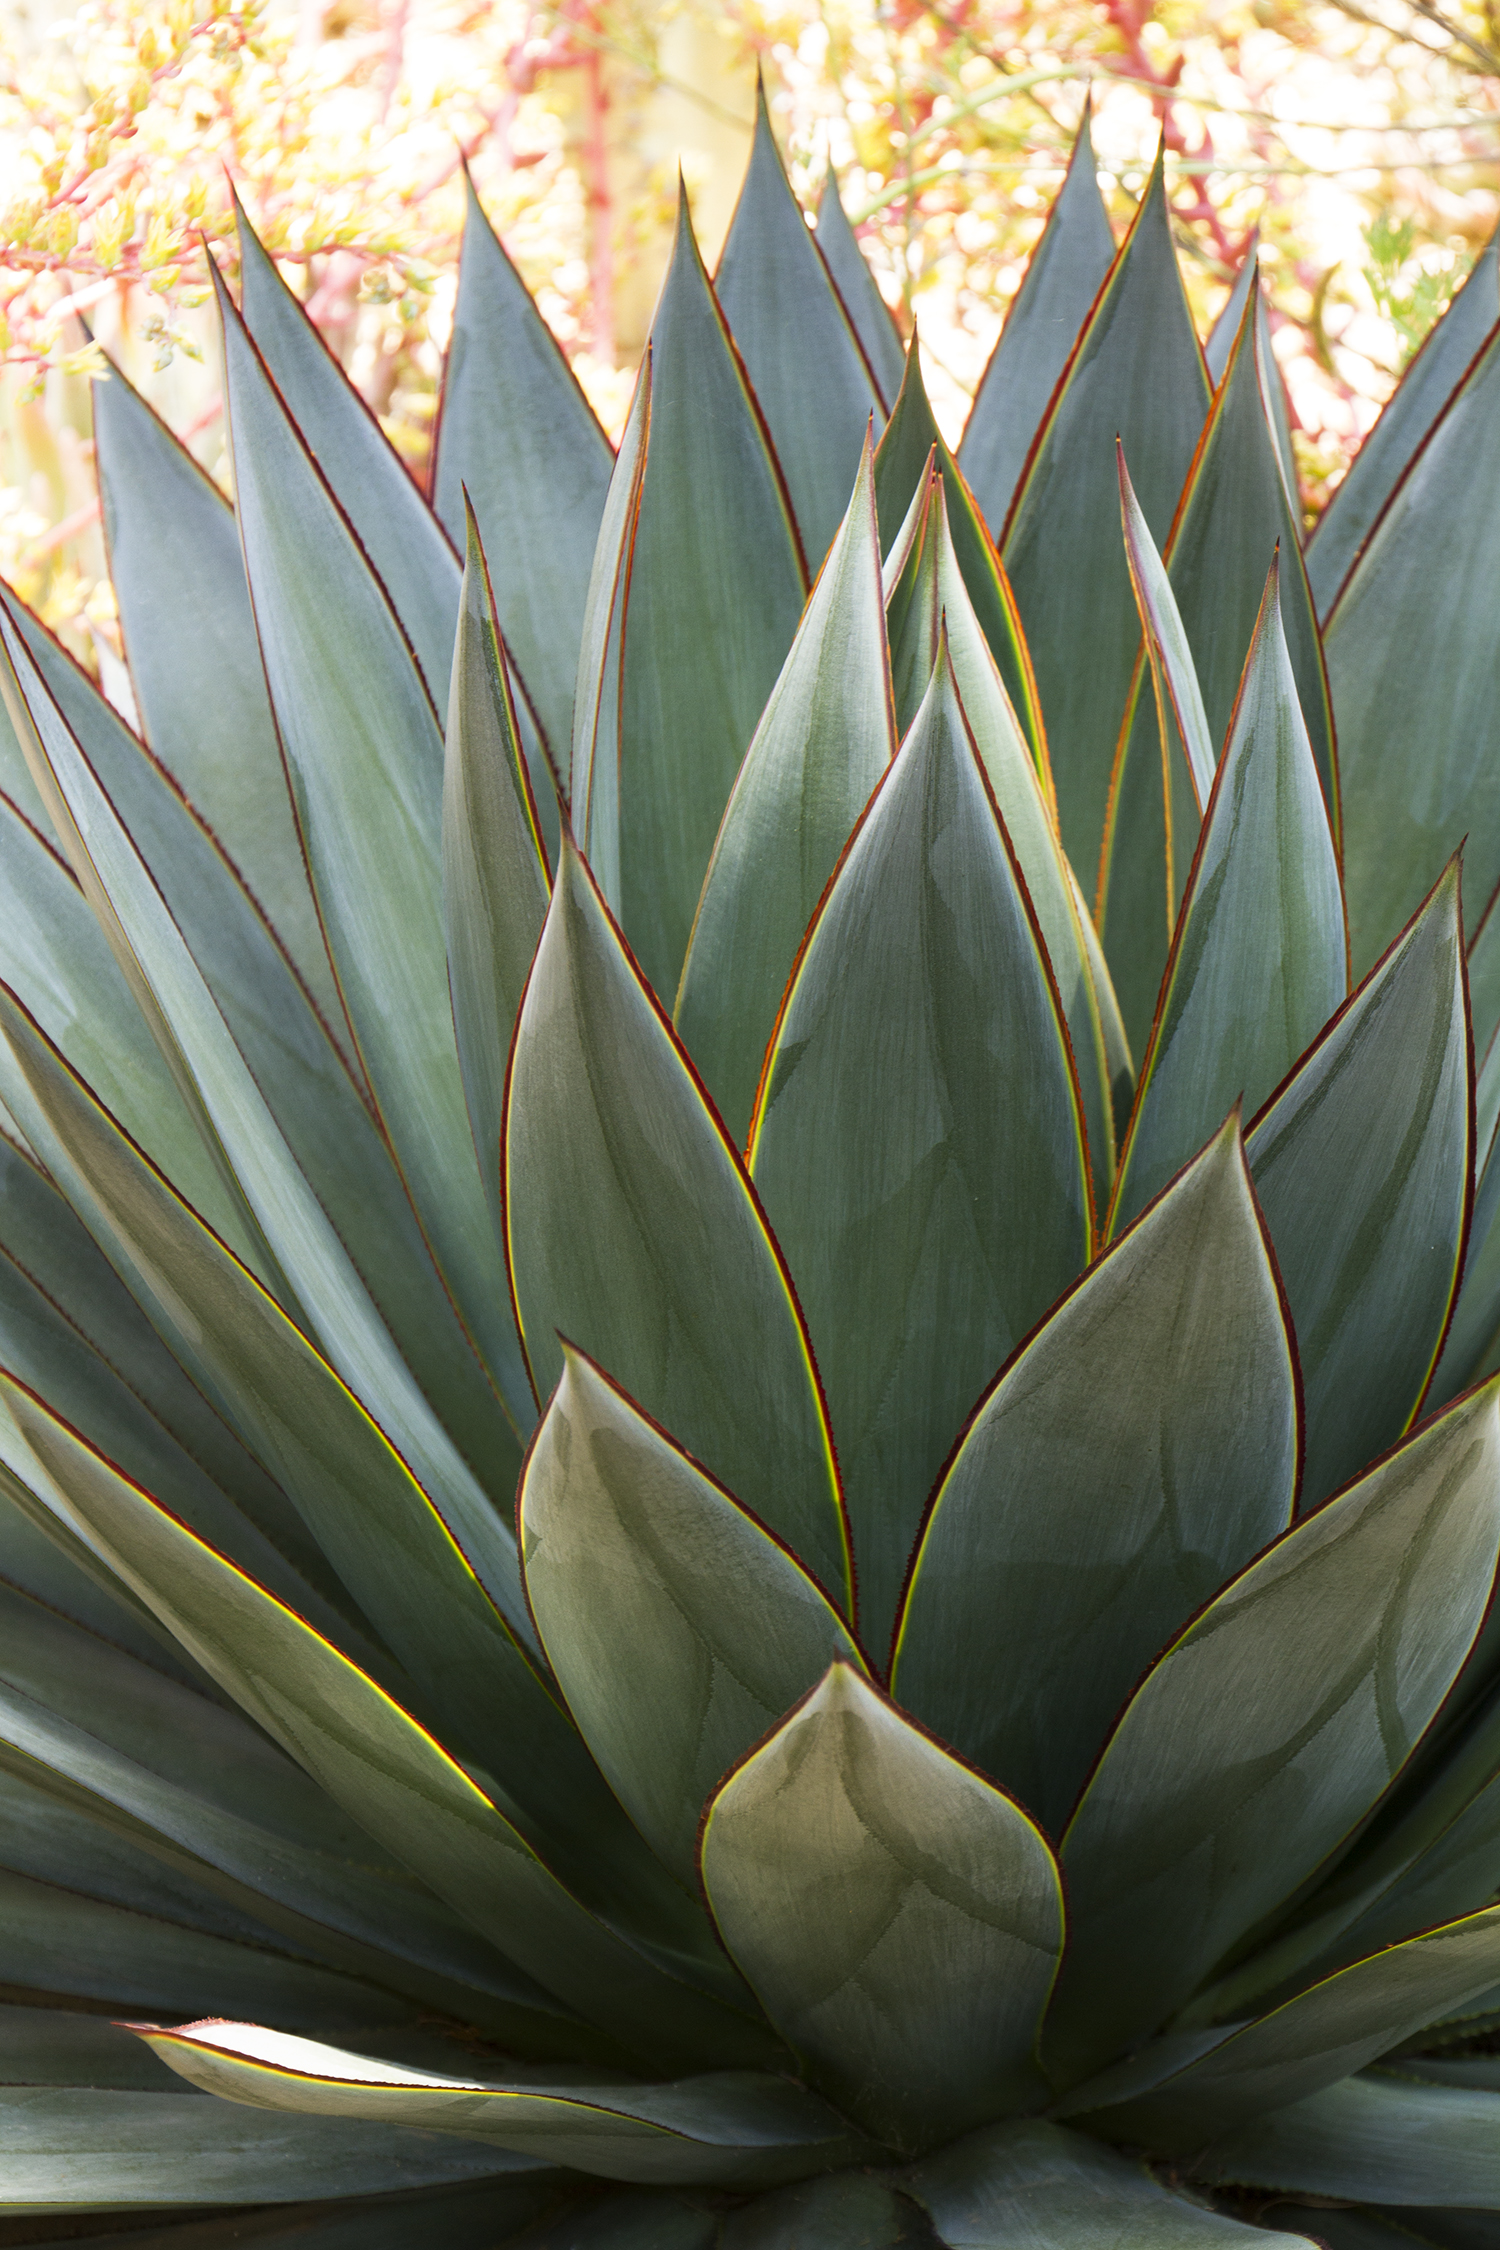 Blue Glow Agave Monrovia Blue Glow Agave